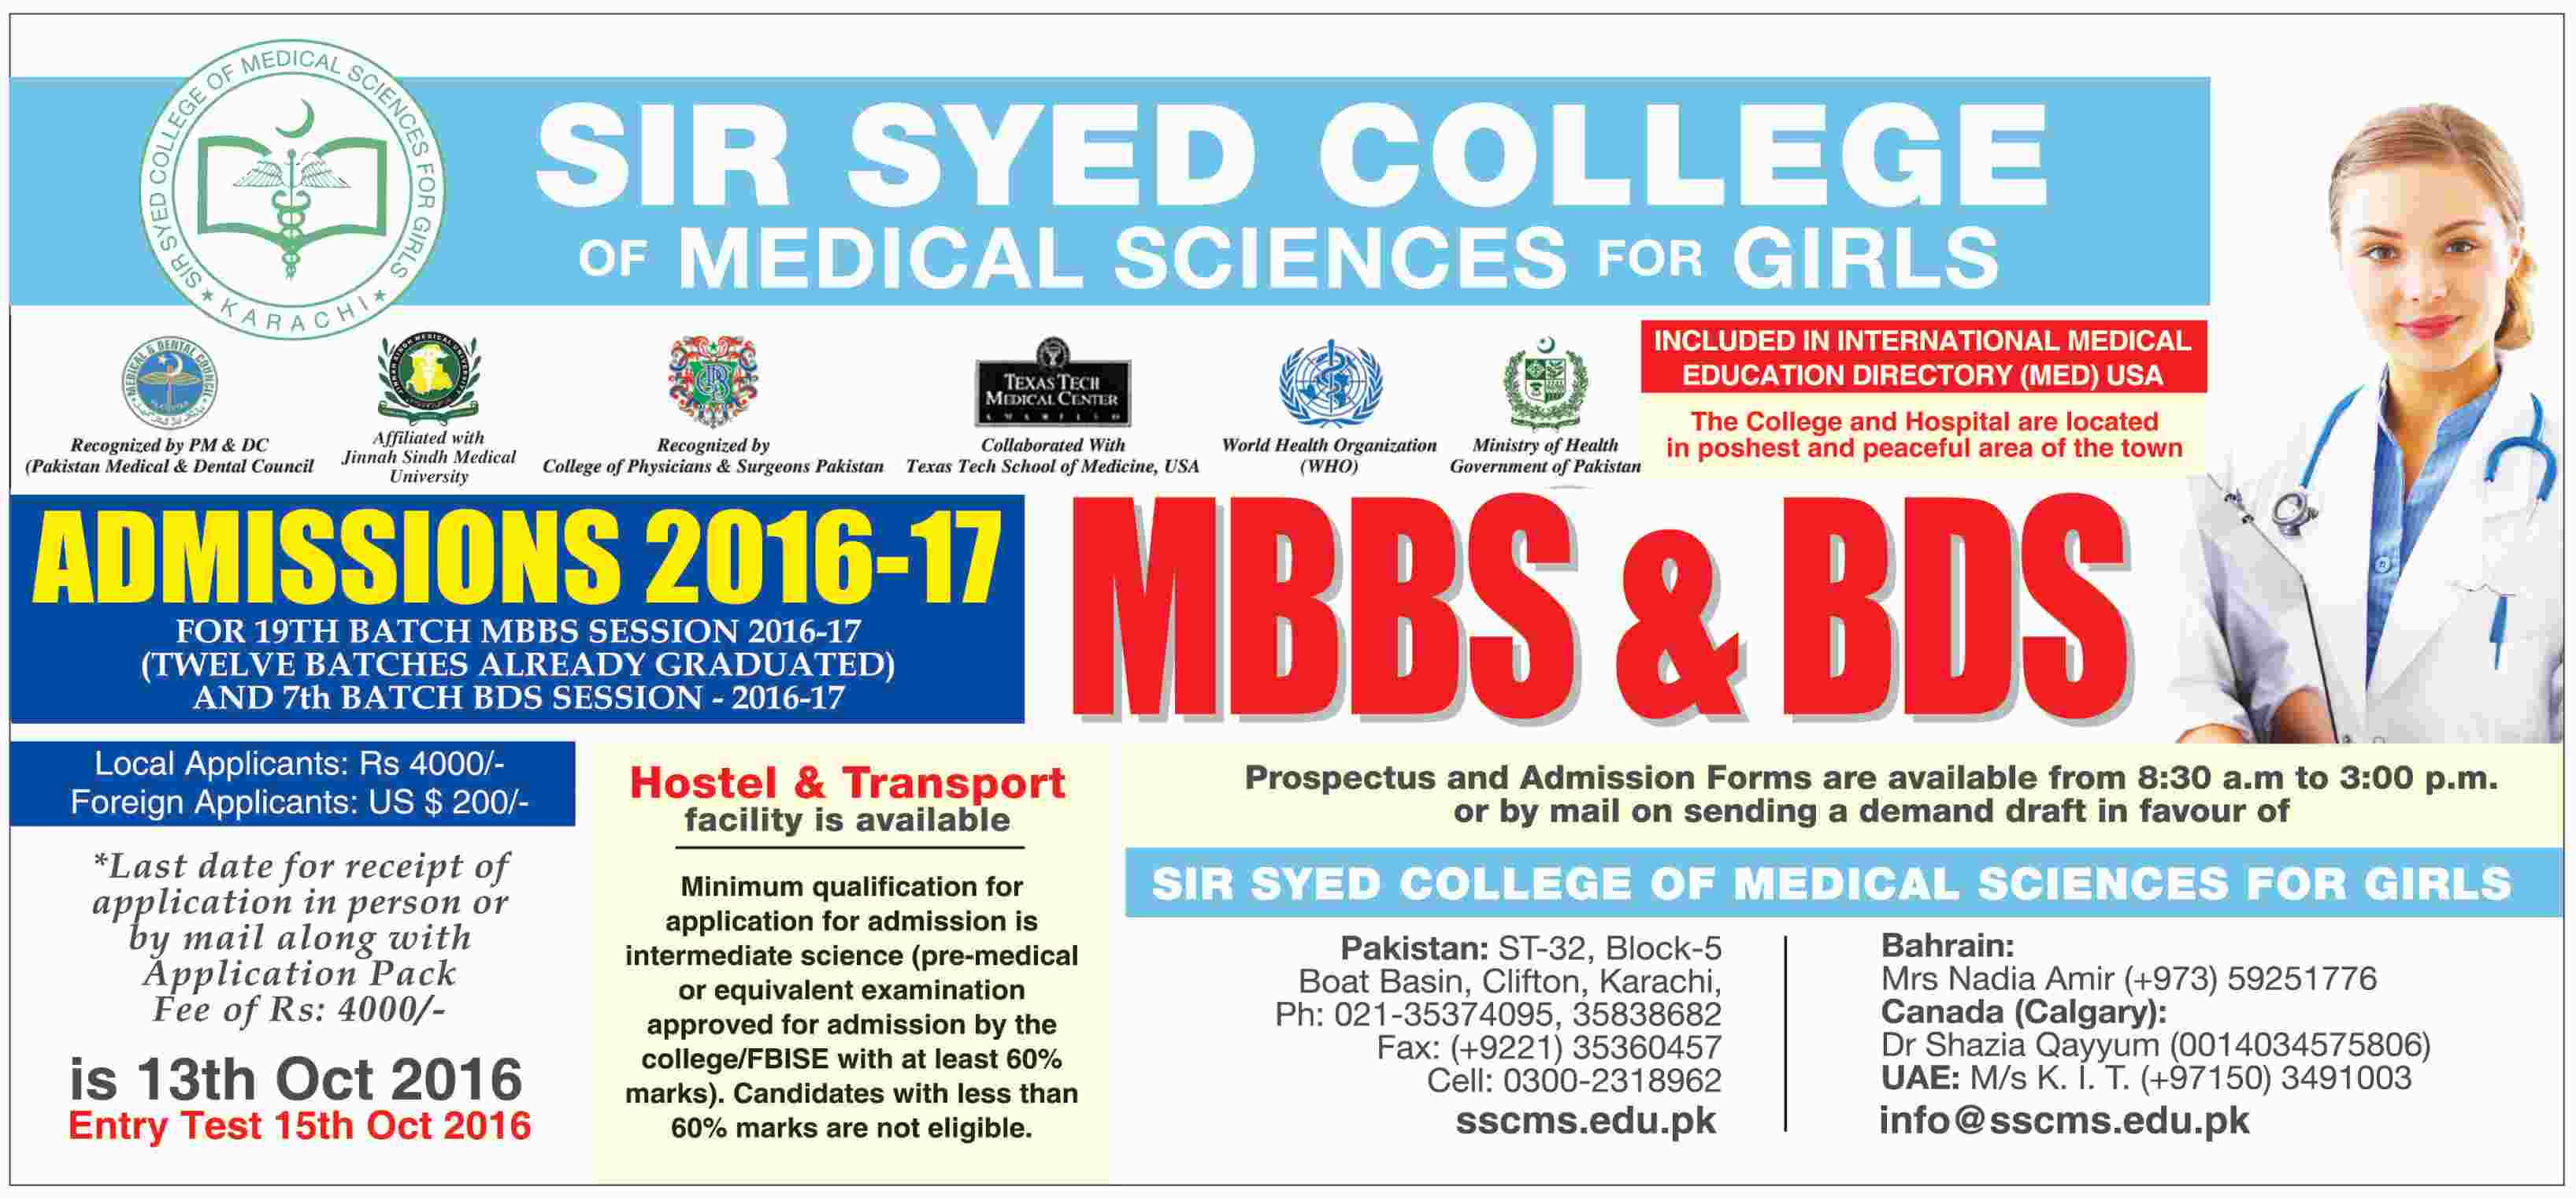 Sir Syed College of Medical Sciences Karachi MBBS, BDS Admission 2016 Form